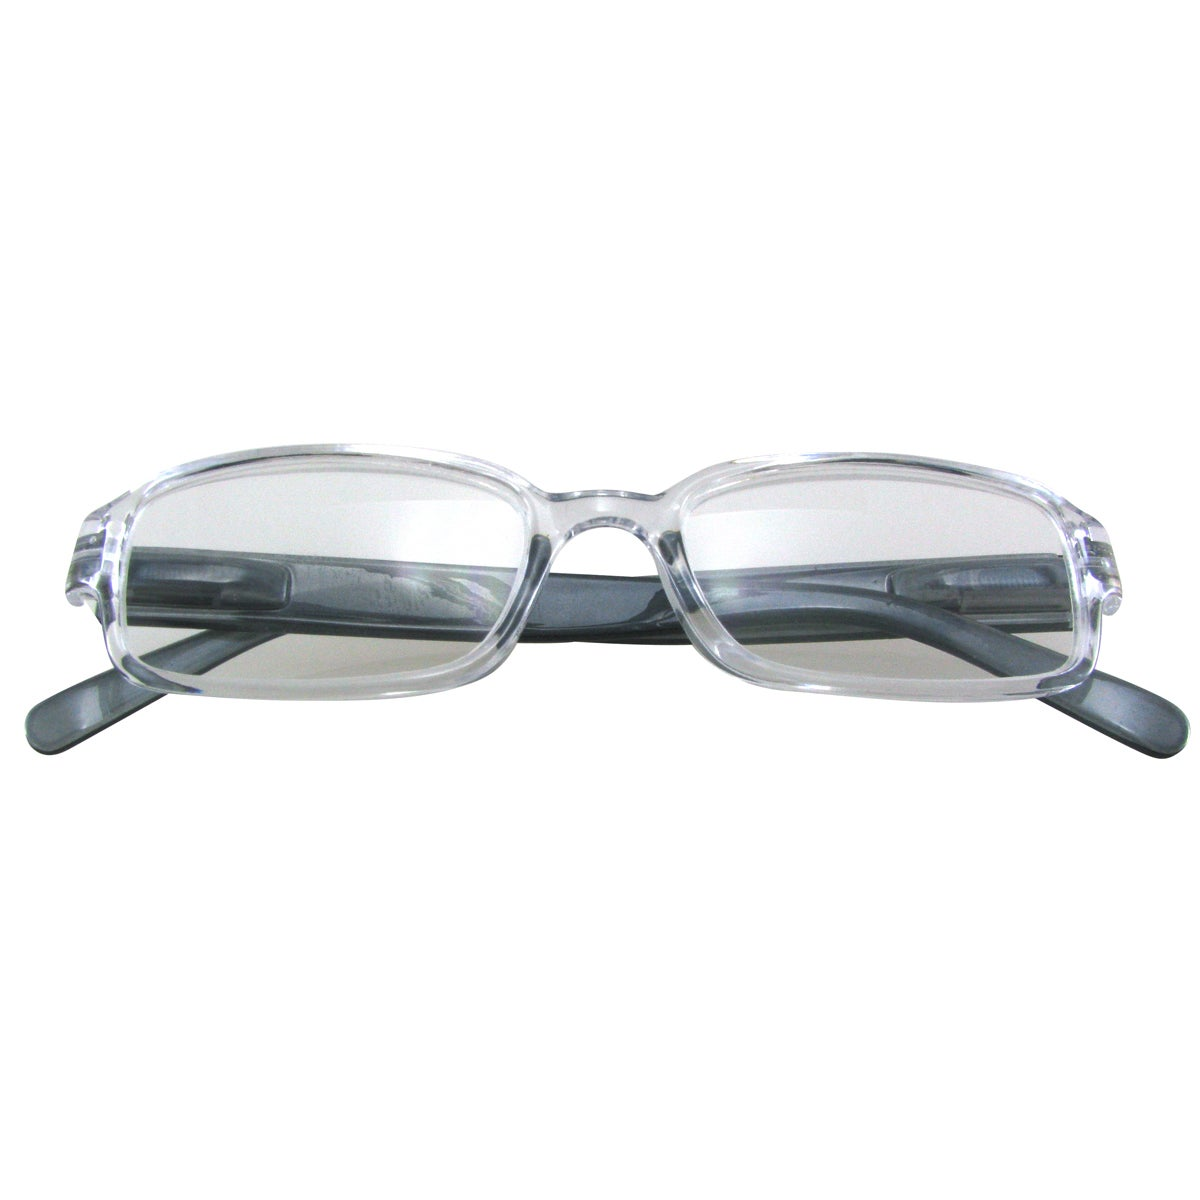 E-specs by Evolutioneyes Grey Computer Glasses - Thumbnail 0